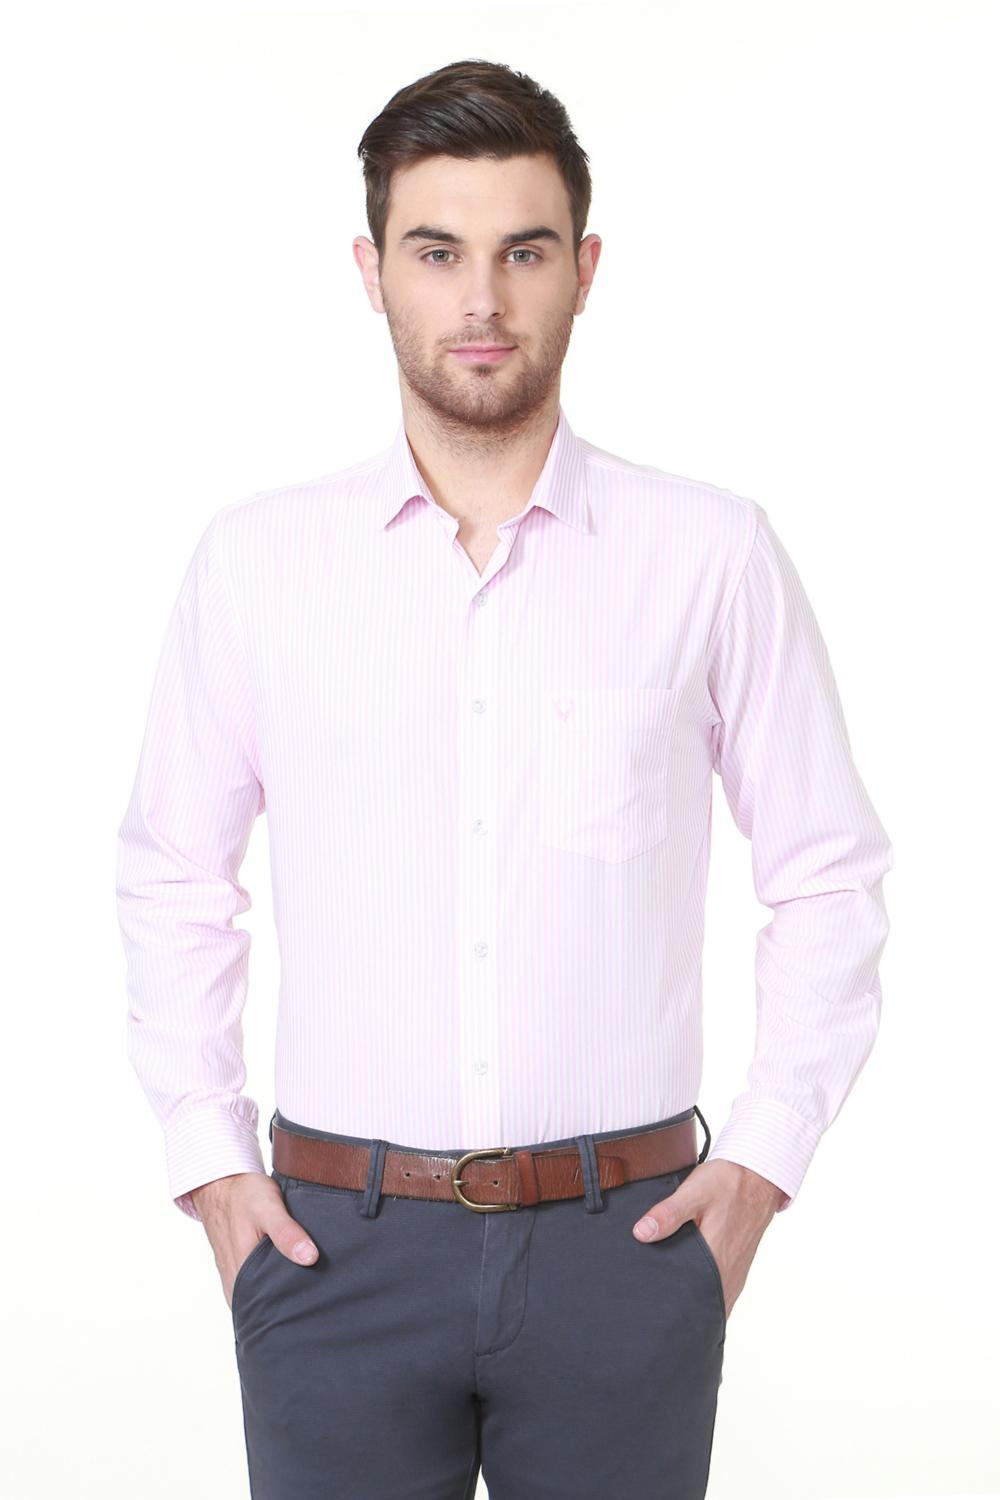 c6768d445a Allen Solly Shirts, Allen Solly Pink Shirt for Men at Allensolly.com